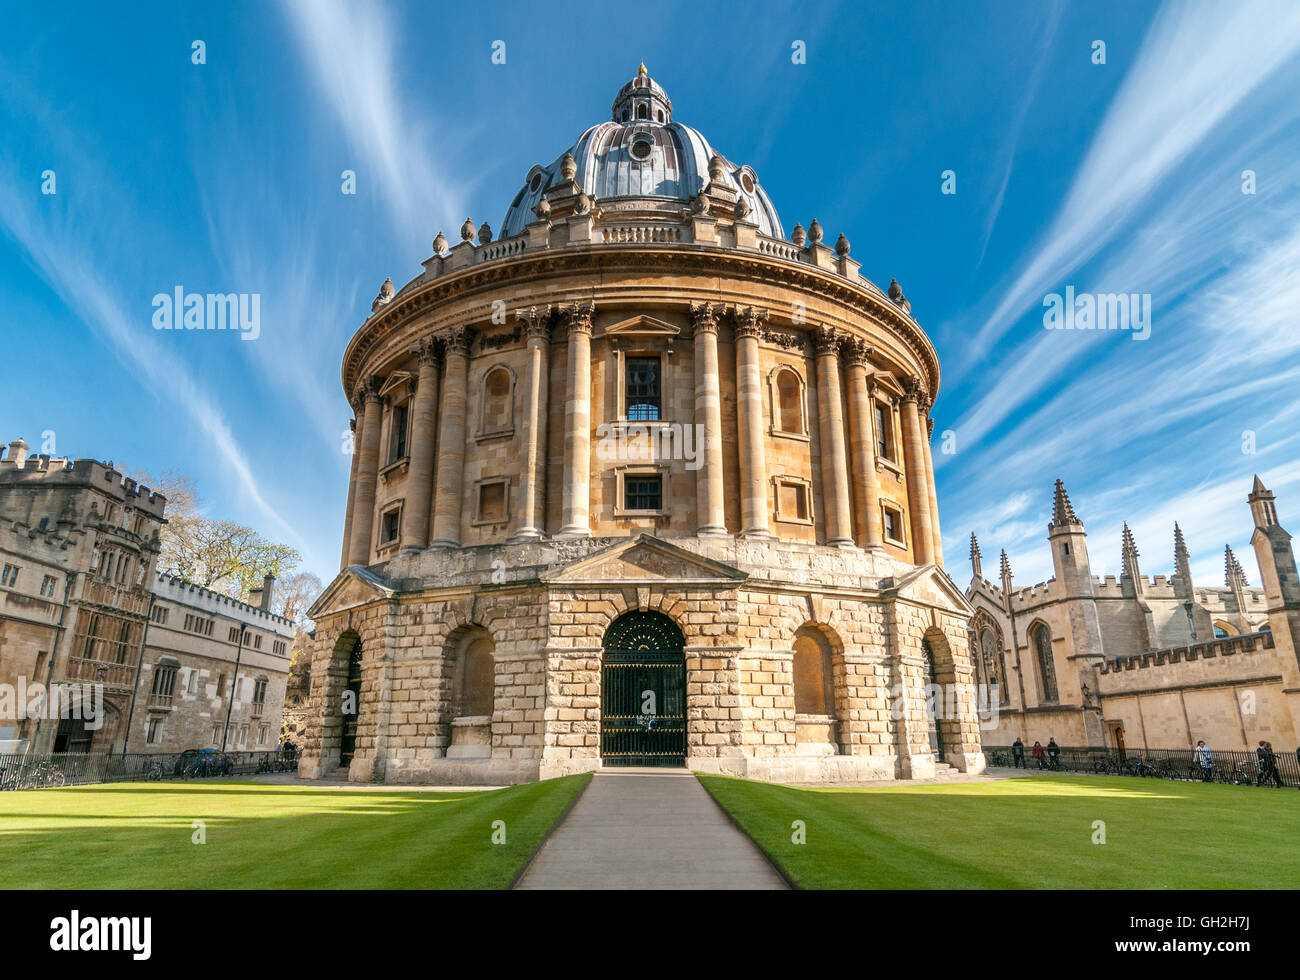 radcliffe-camera-oxford-university-united-kingdom-GH2H7J.jpg